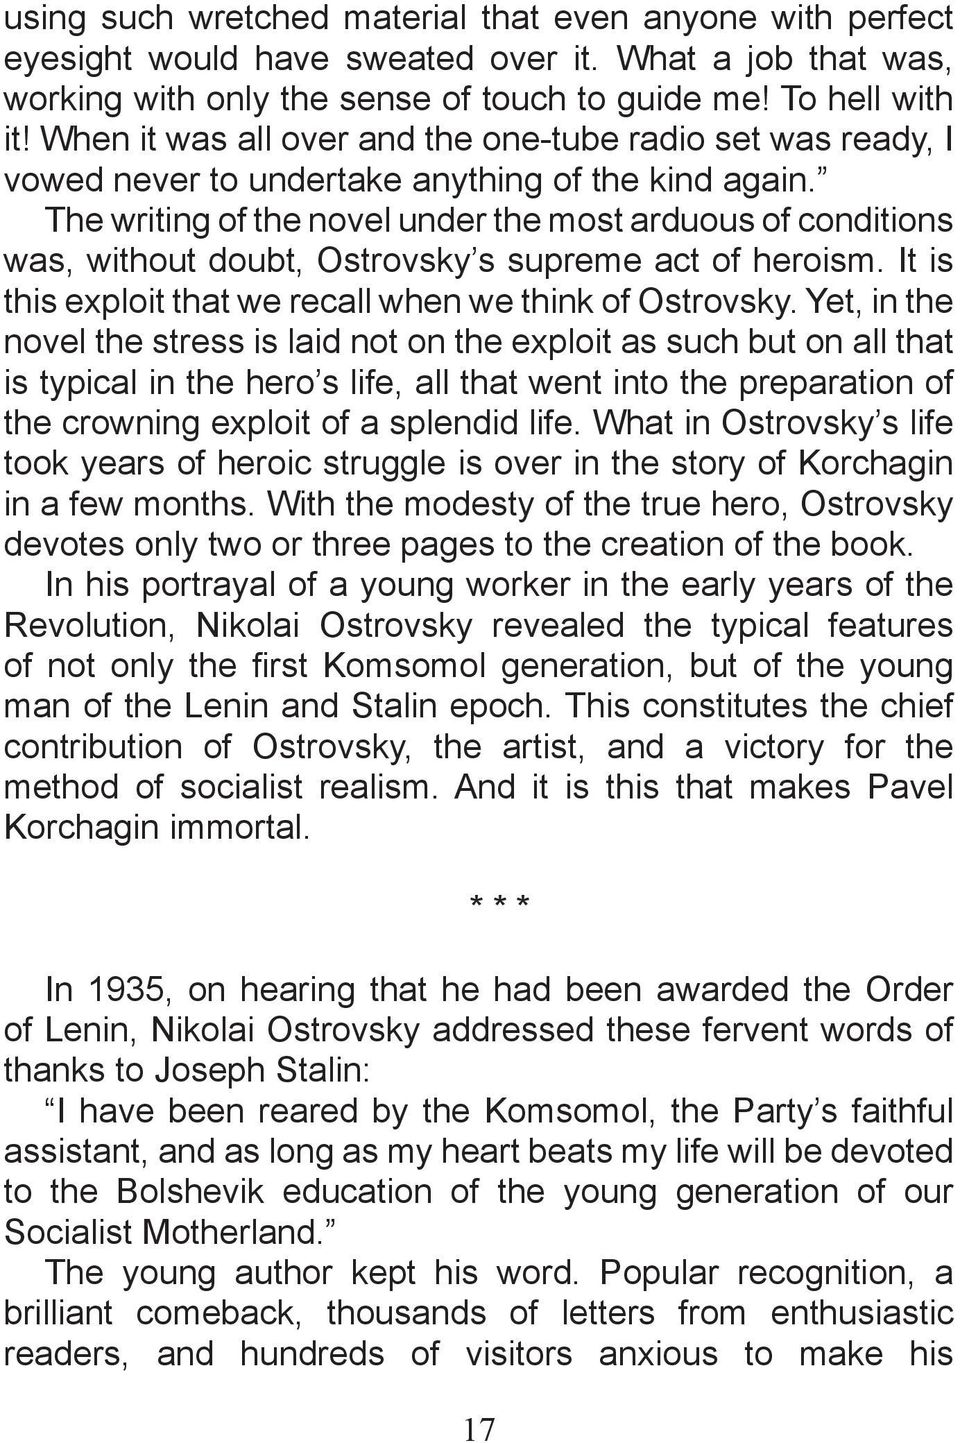 The writing of the novel under the most arduous of conditions was, without doubt, Ostrovsky s supreme act of heroism. It is this exploit that we recall when we think of Ostrovsky.